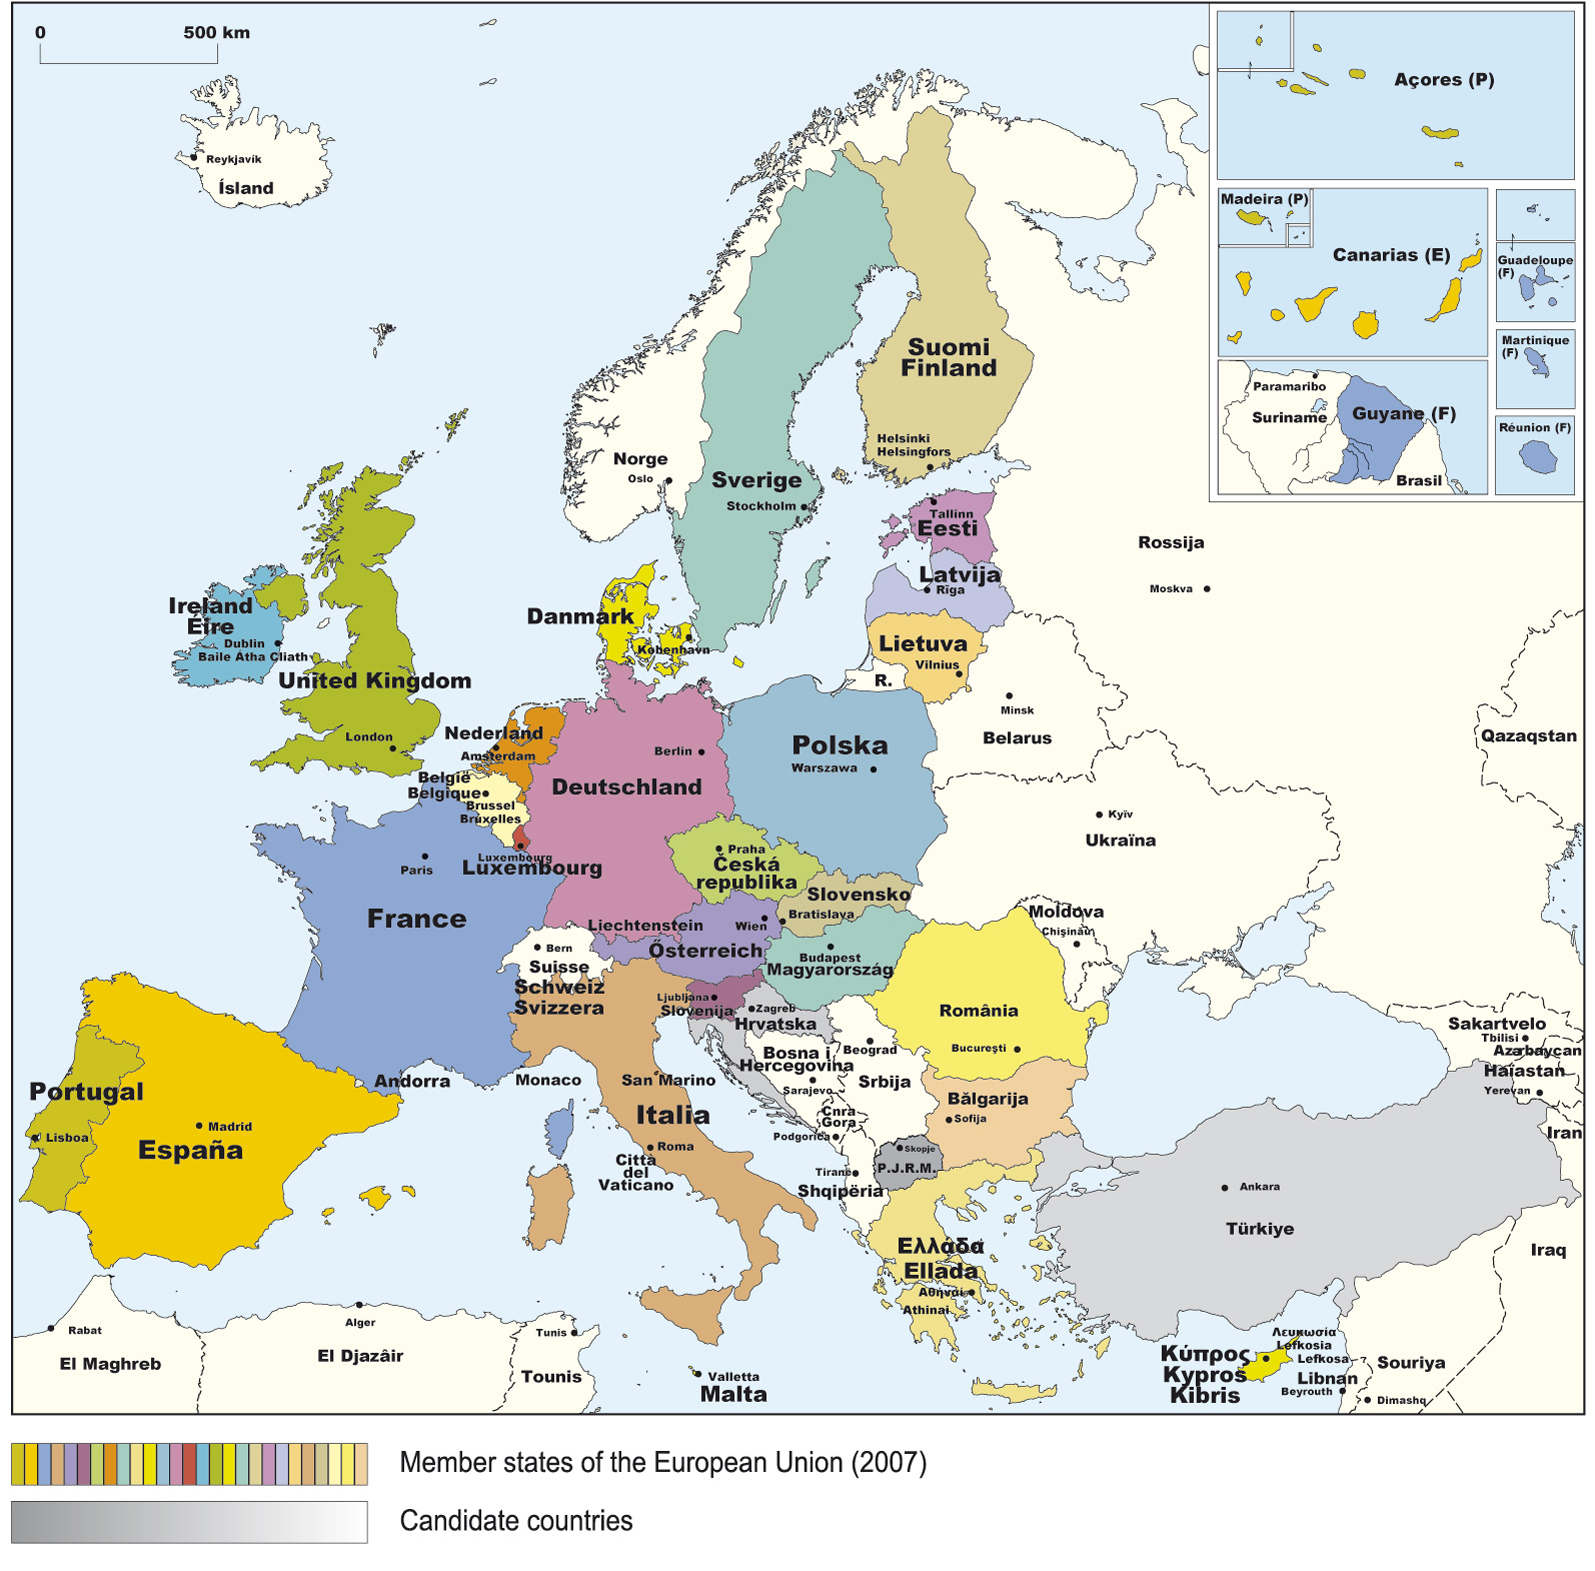 europe map hd with countries. Black Bedroom Furniture Sets. Home Design Ideas